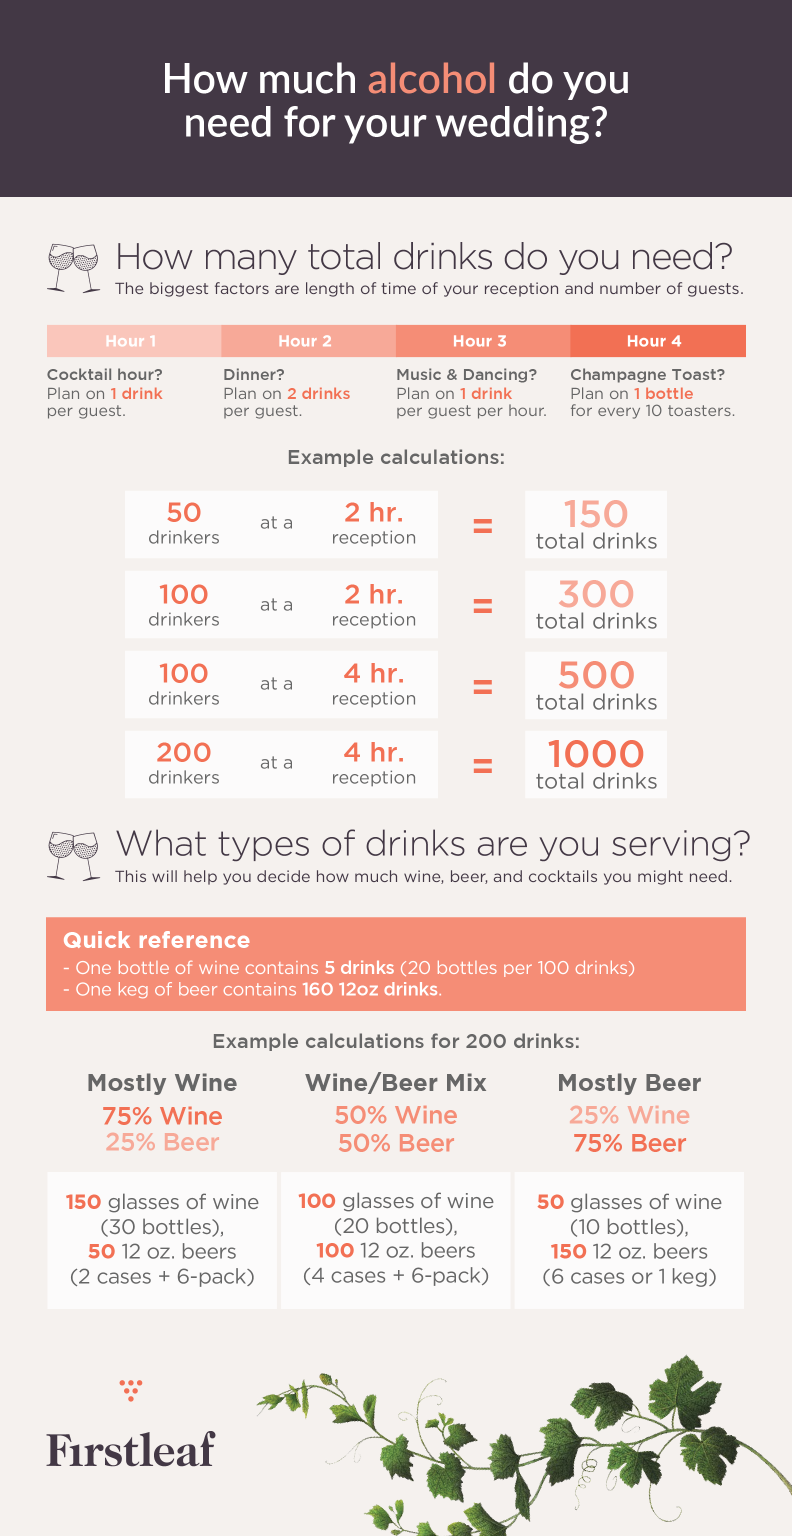 How much alcohol do you need for a wedding?